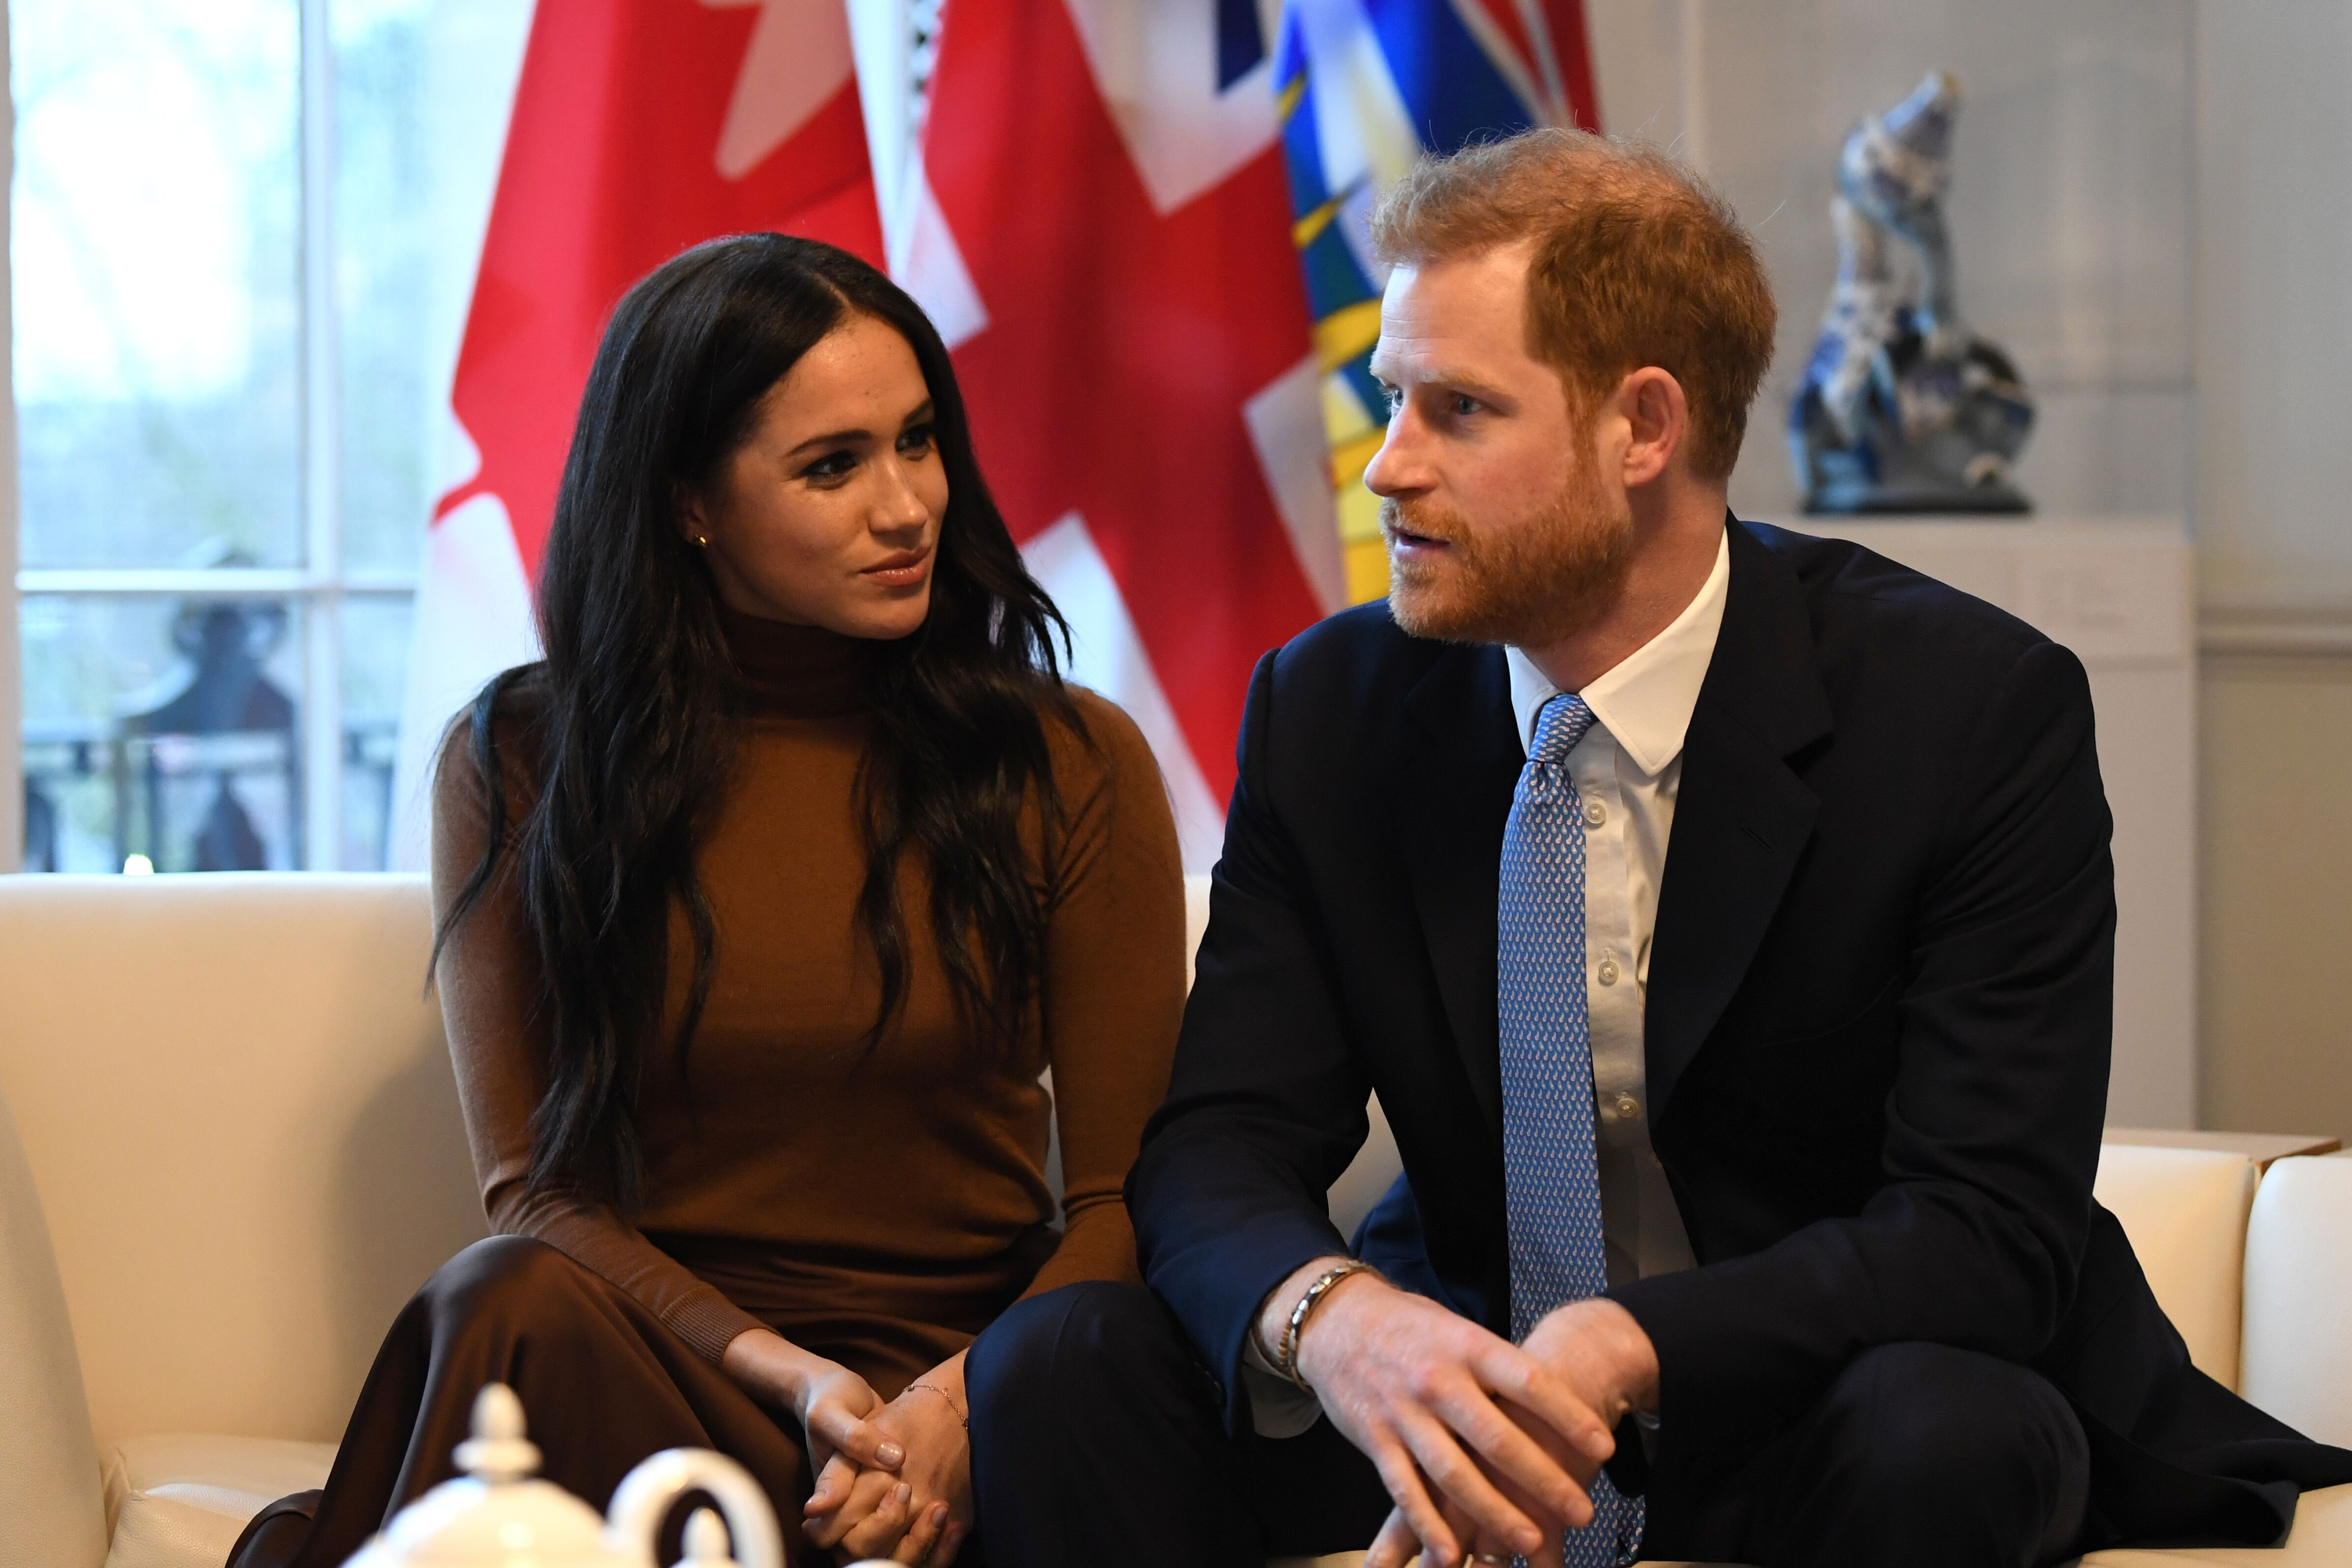 Prince Harry, Duke of Sussex and Meghan, Duchess of Sussex gesture during their visit to Canada House in thanks for the warm Canadian hospitality and support they received during their recent stay in Canada, on January 7, 2020 in London, England | Photo: Getty Images